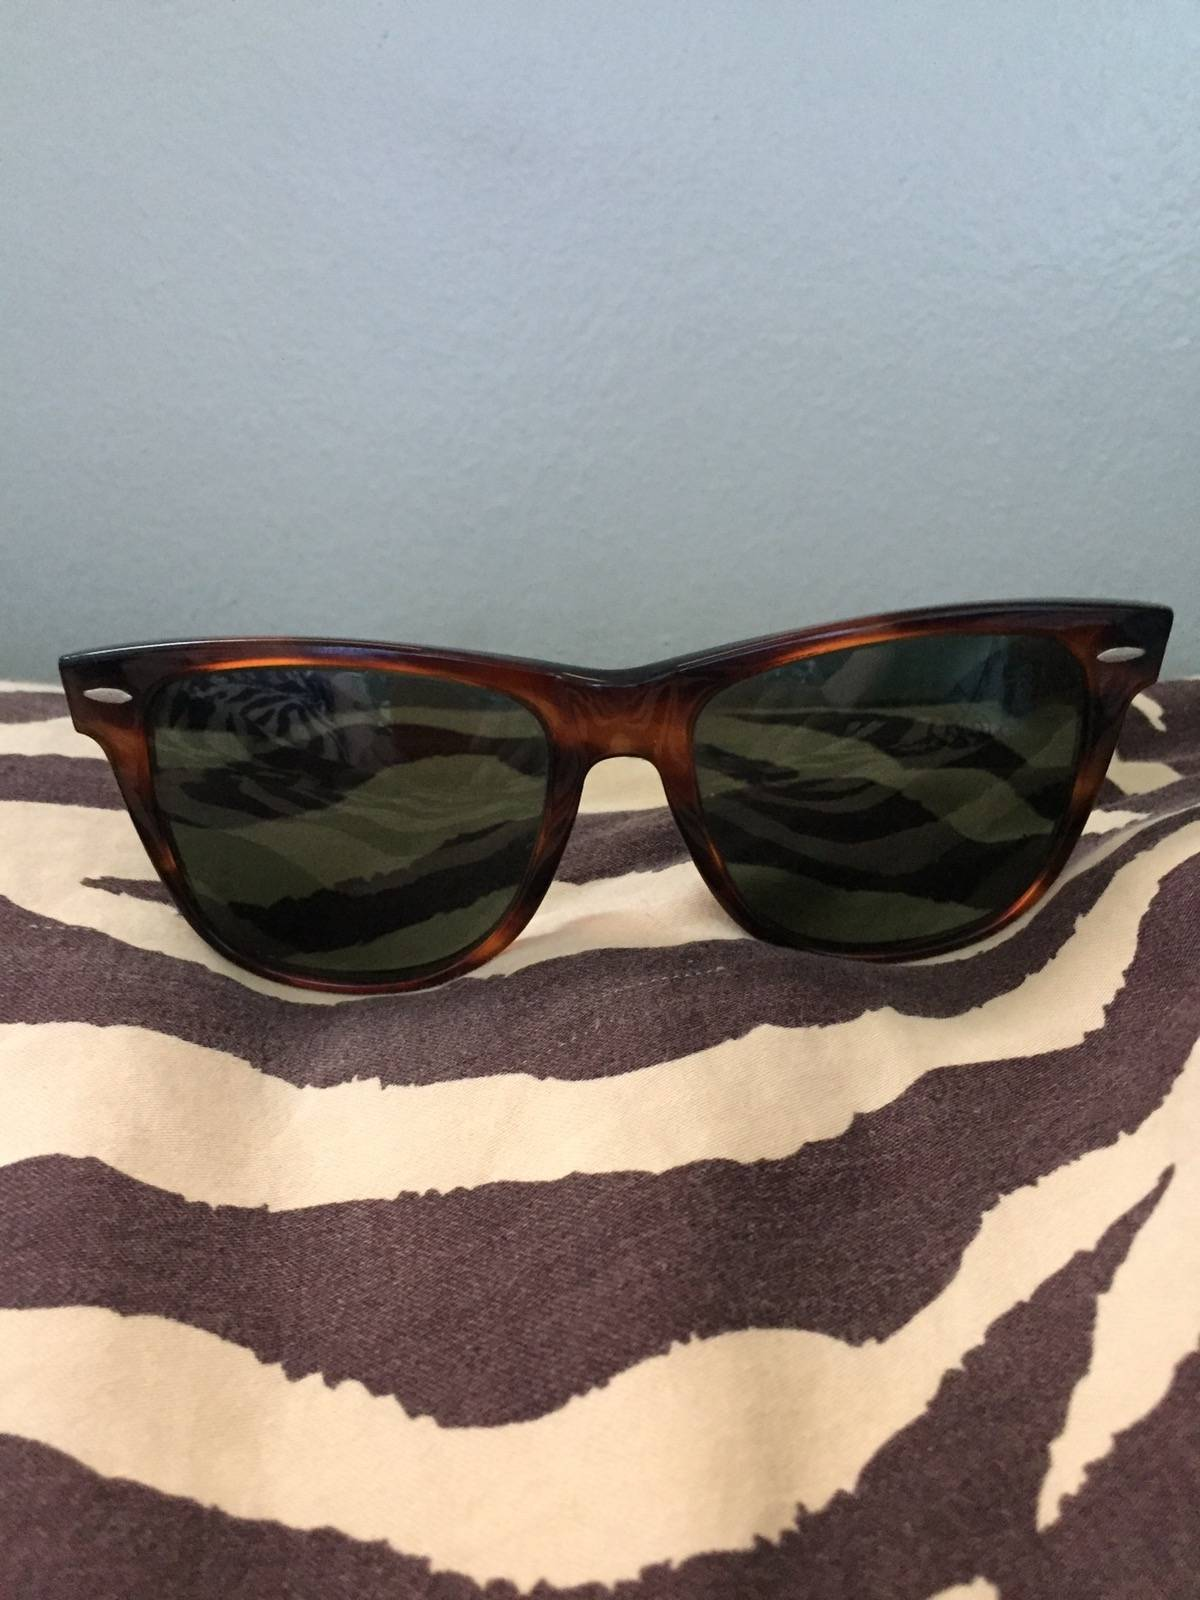 7bec72300c4 RayBan Ray Ban Bausch and Lomb Wayfarer 2 Size one size - Sunglasses for  Sale - Grailed